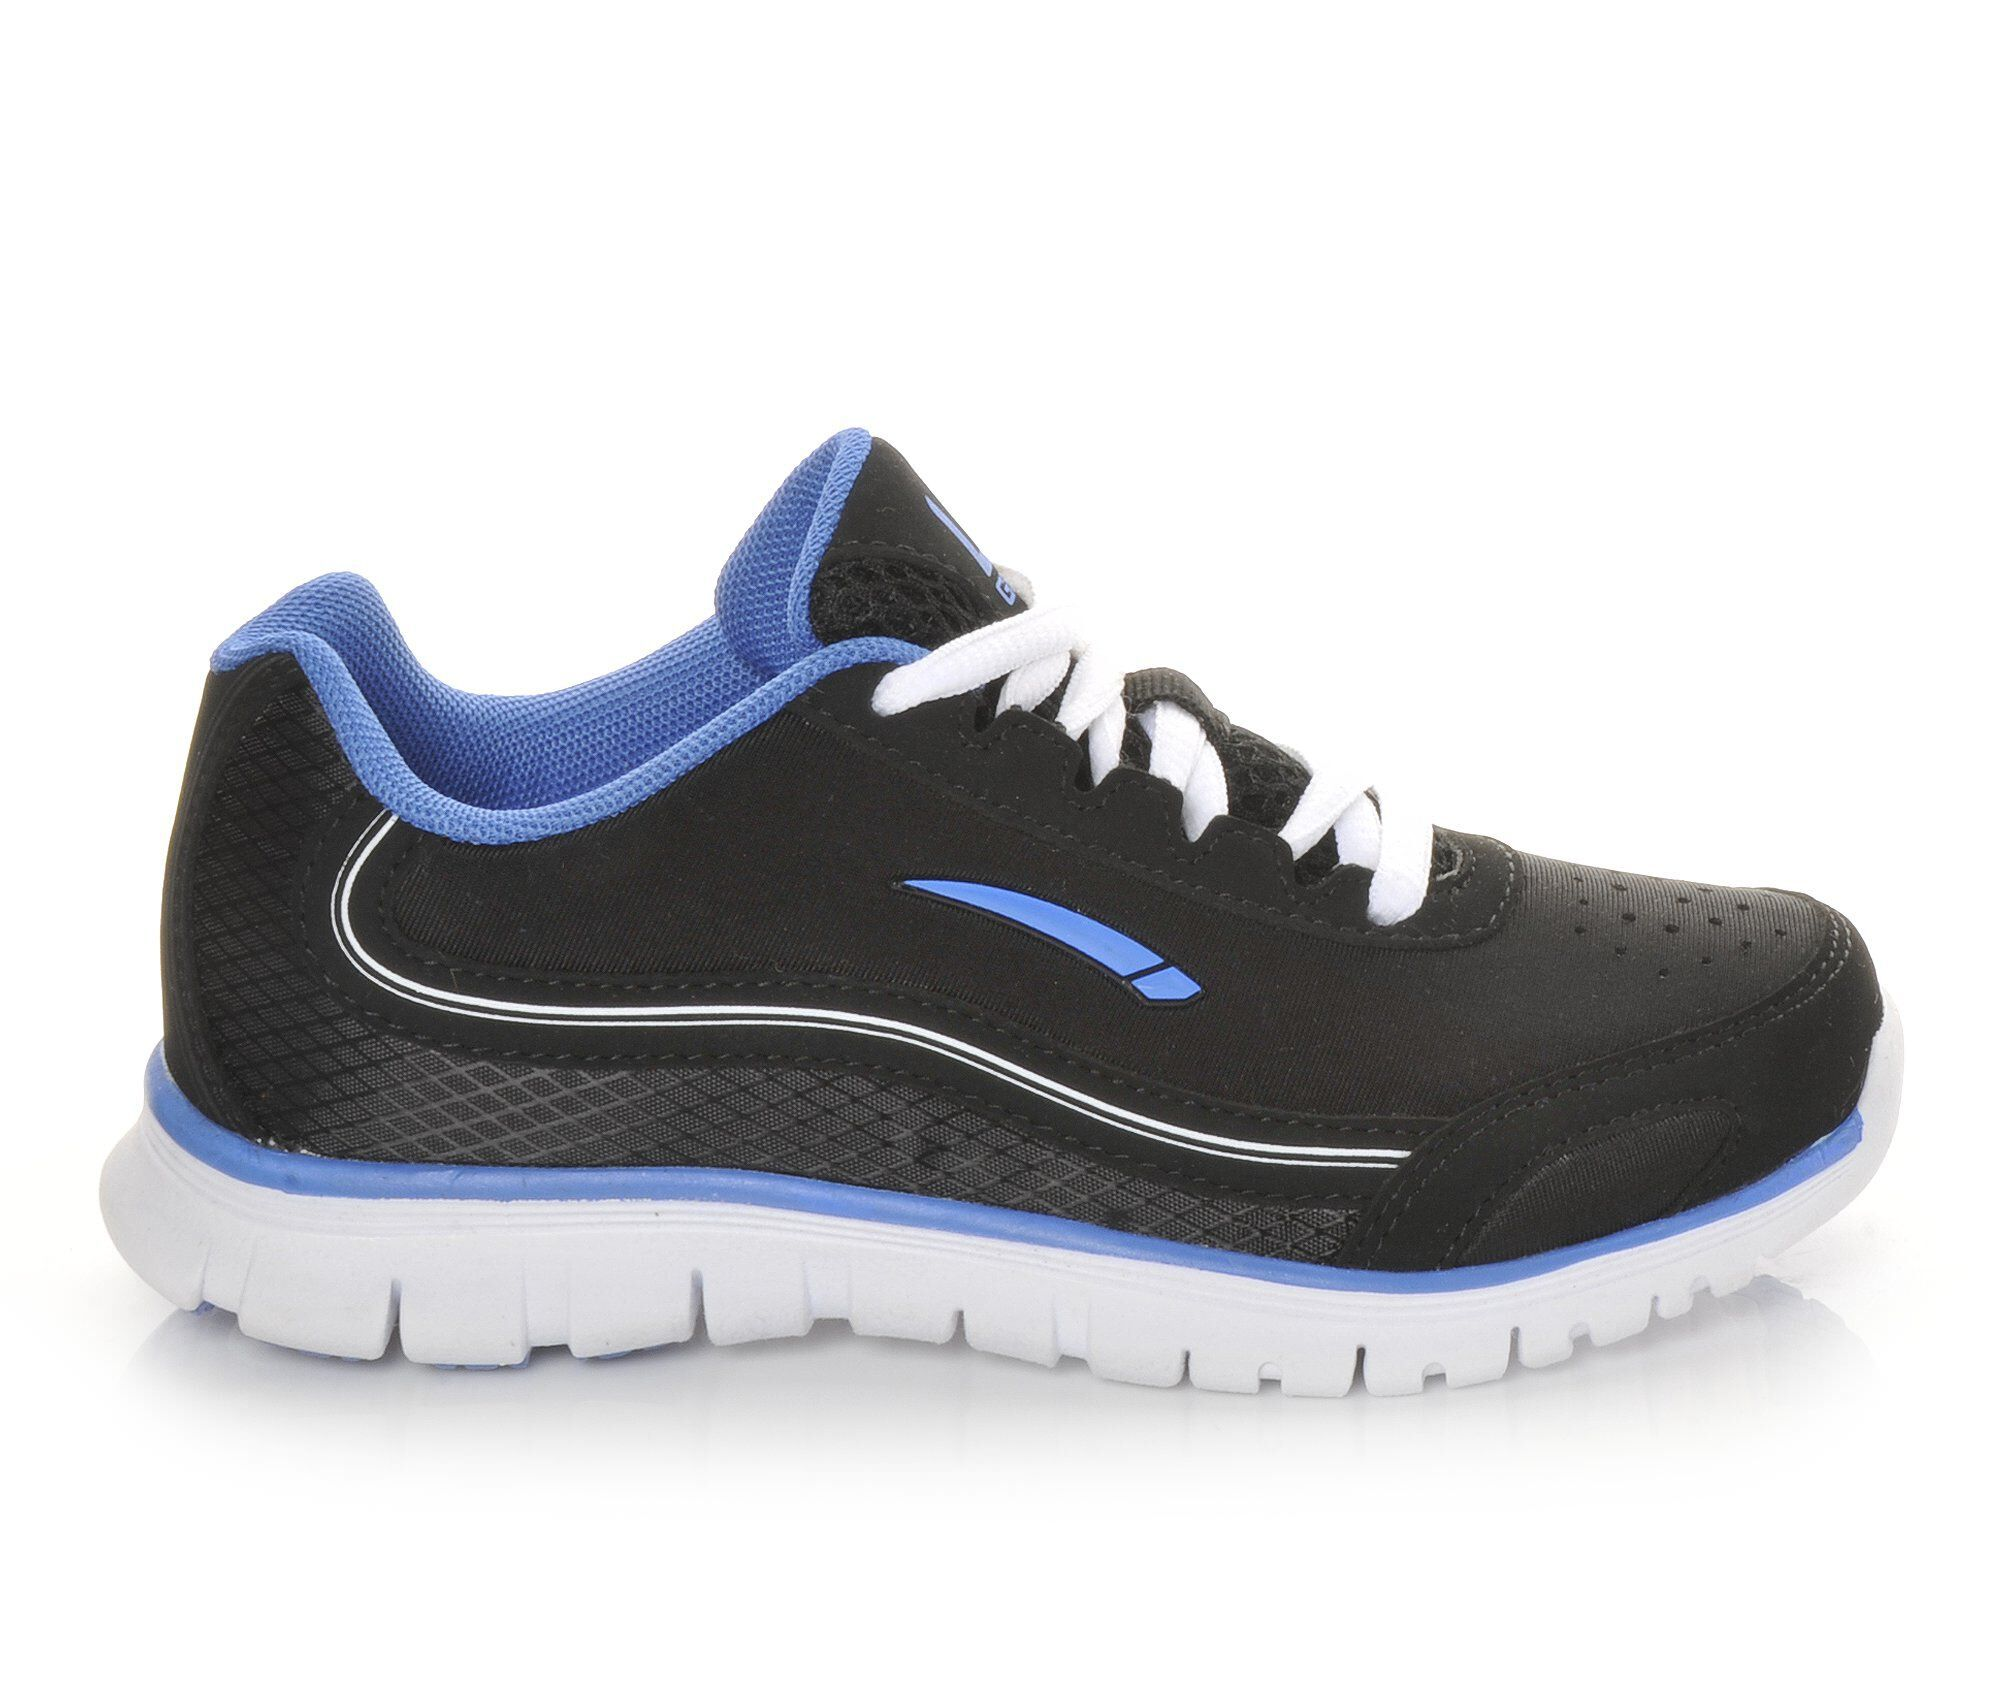 Images Boys LA Gear Oust 1056 Running Shoes